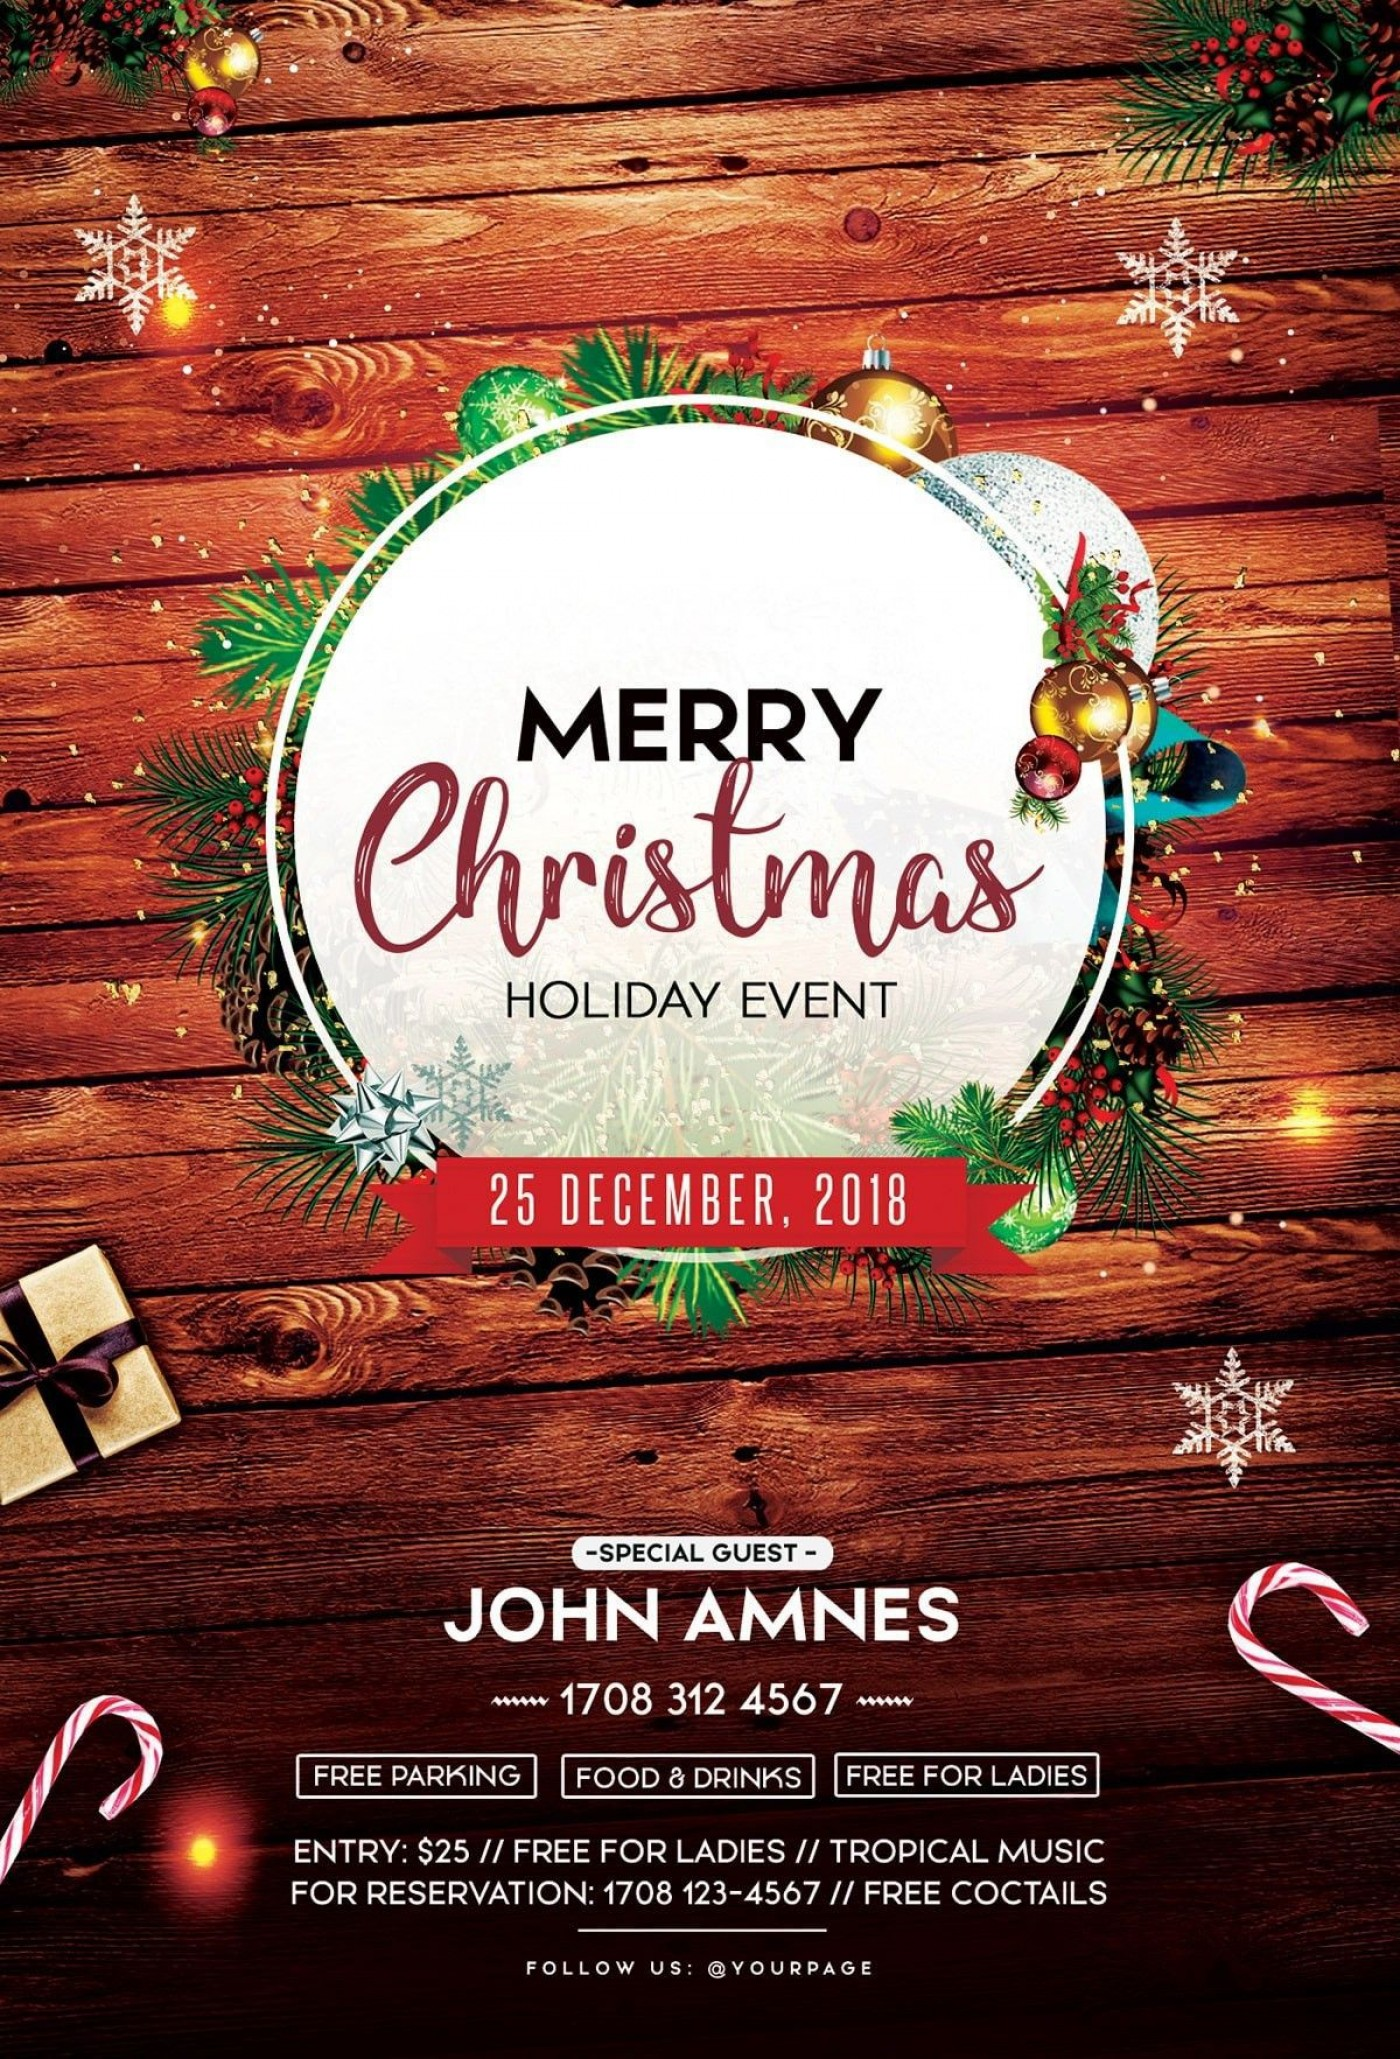 002 Remarkable Free Christma Poster Template High Resolution  Uk Party Download Fair1400